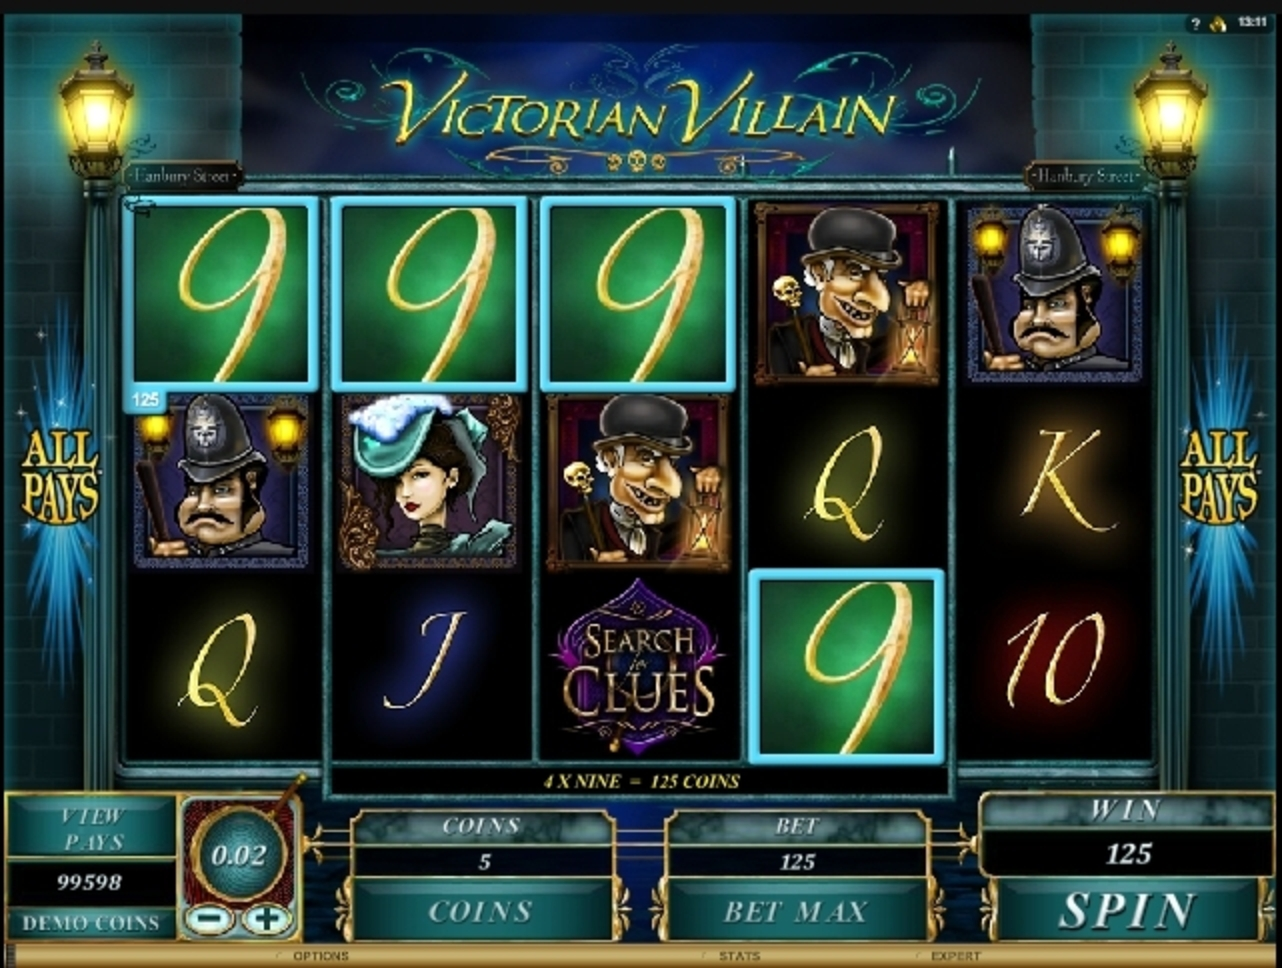 Win Money in Victorian Villain Free Slot Game by Microgaming